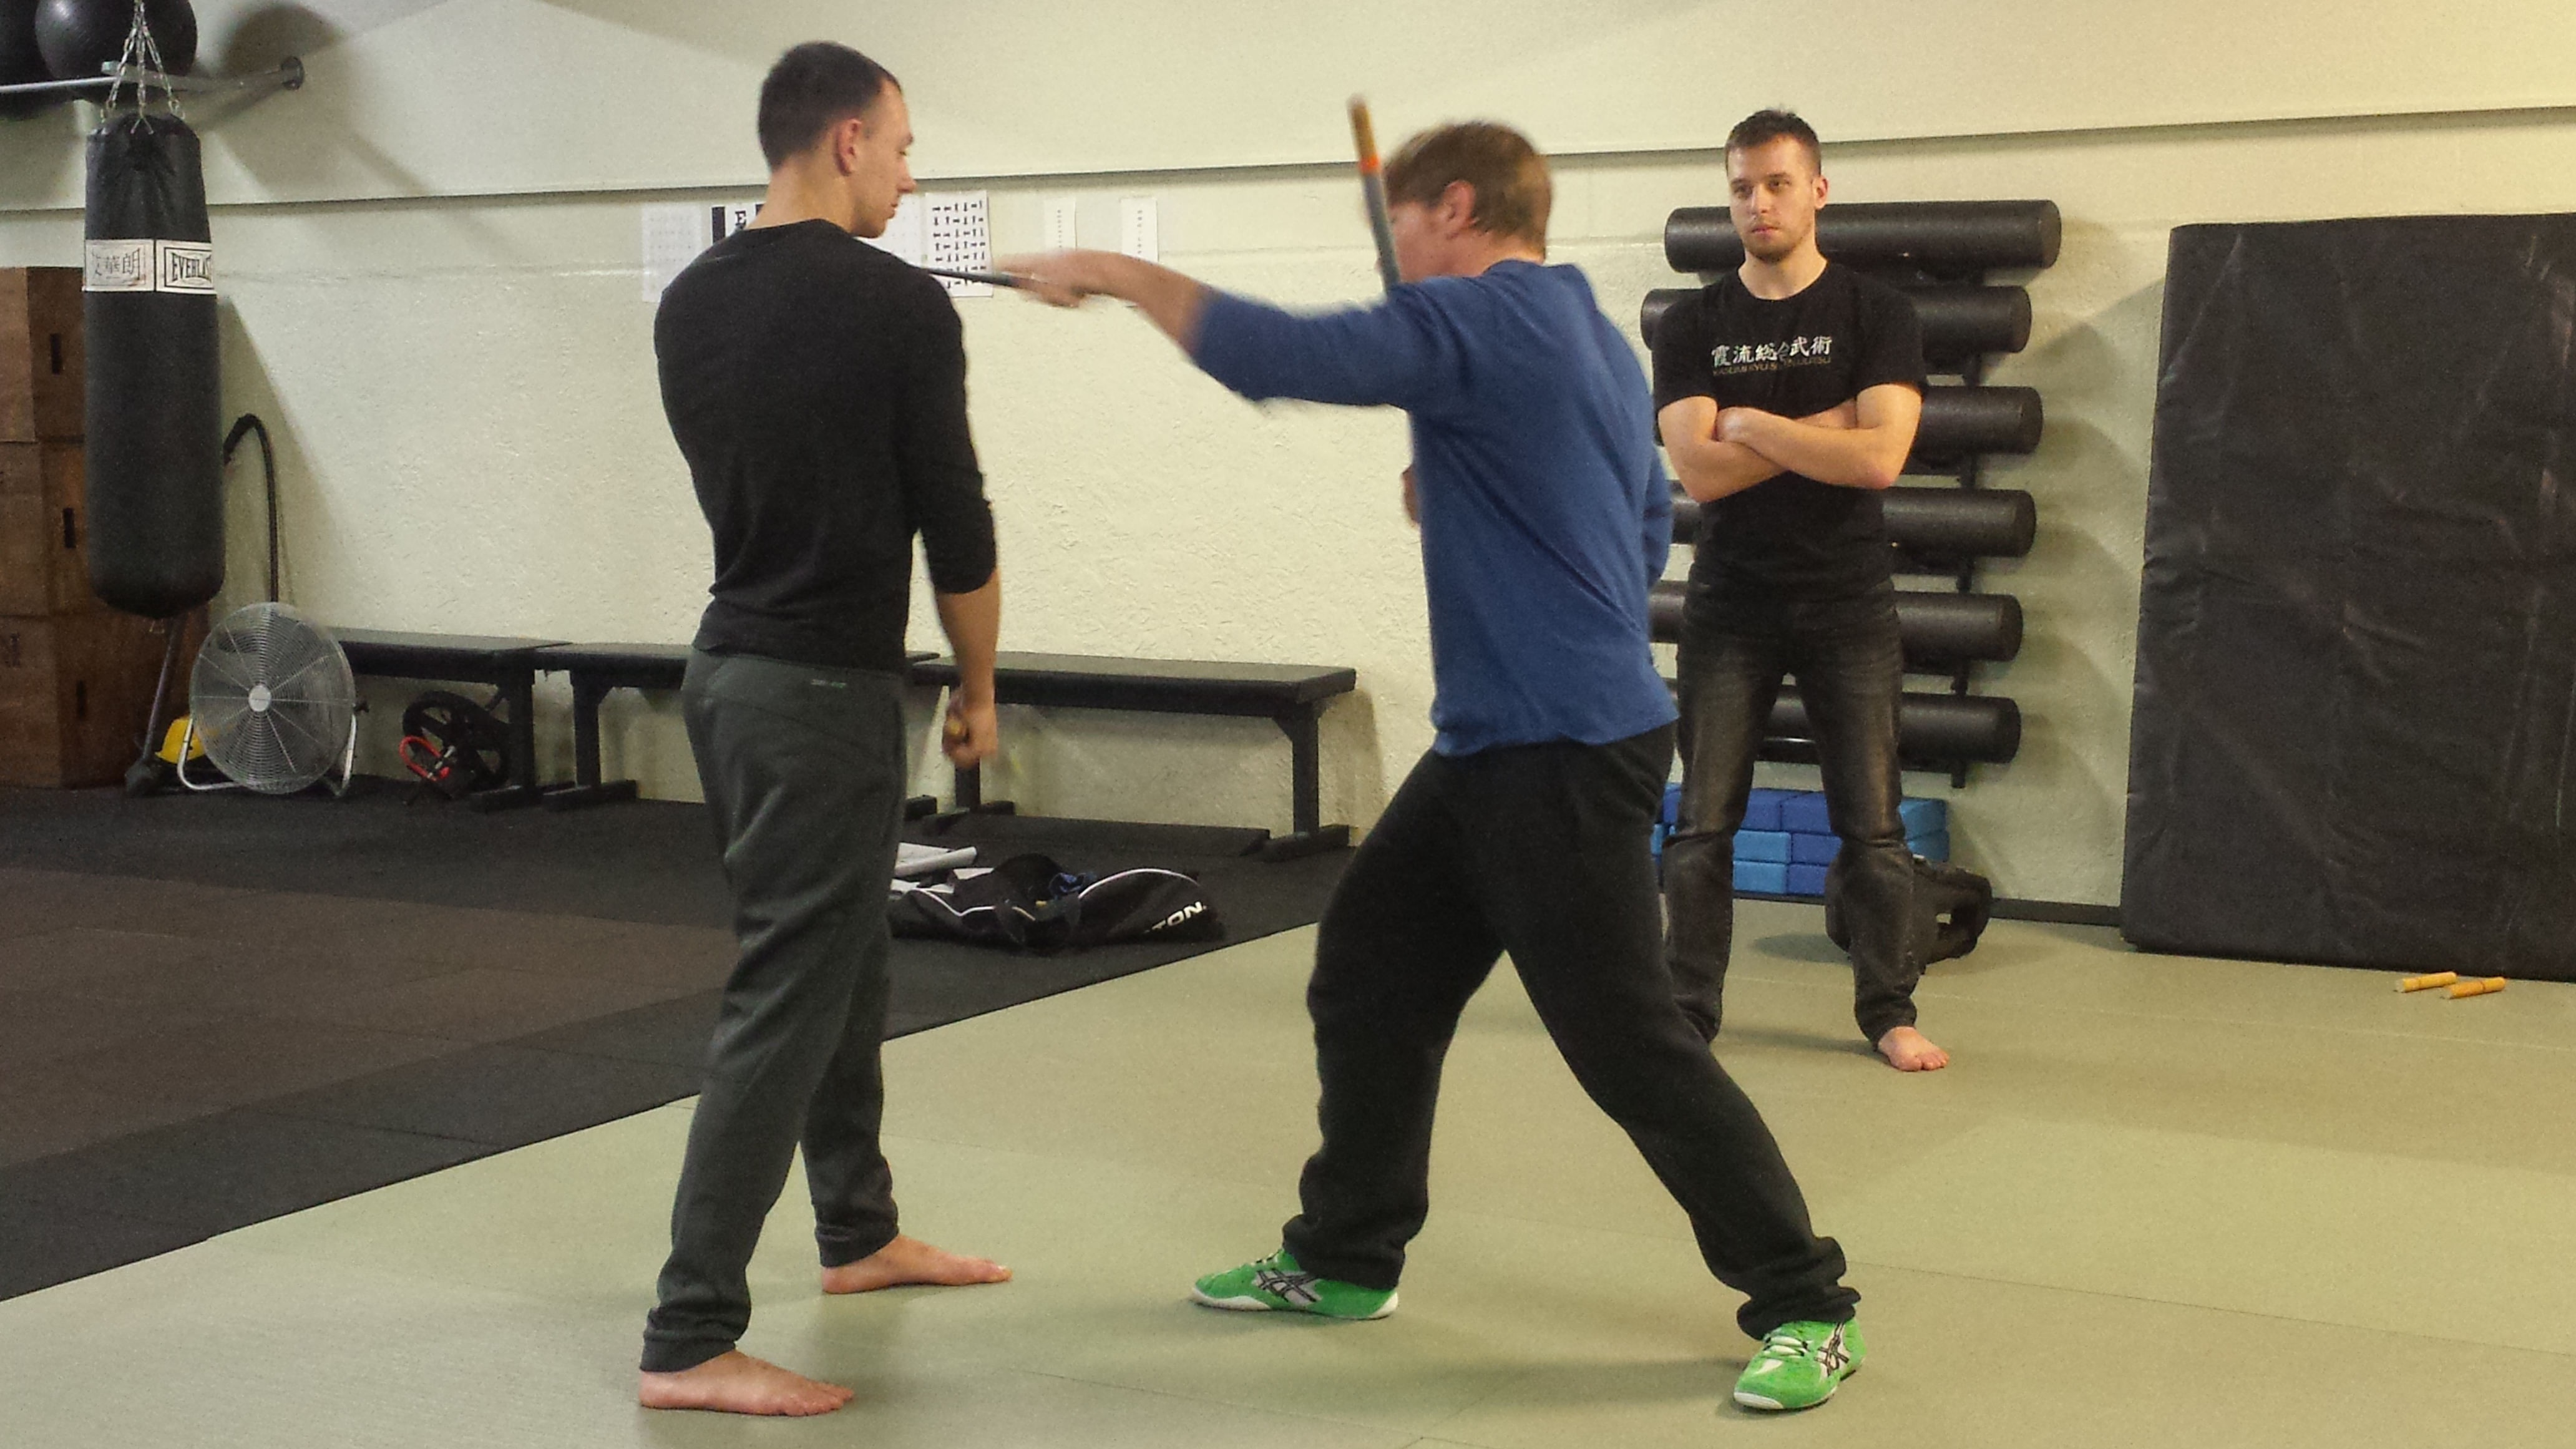 5 Rings Kickboxing-Introductory offer